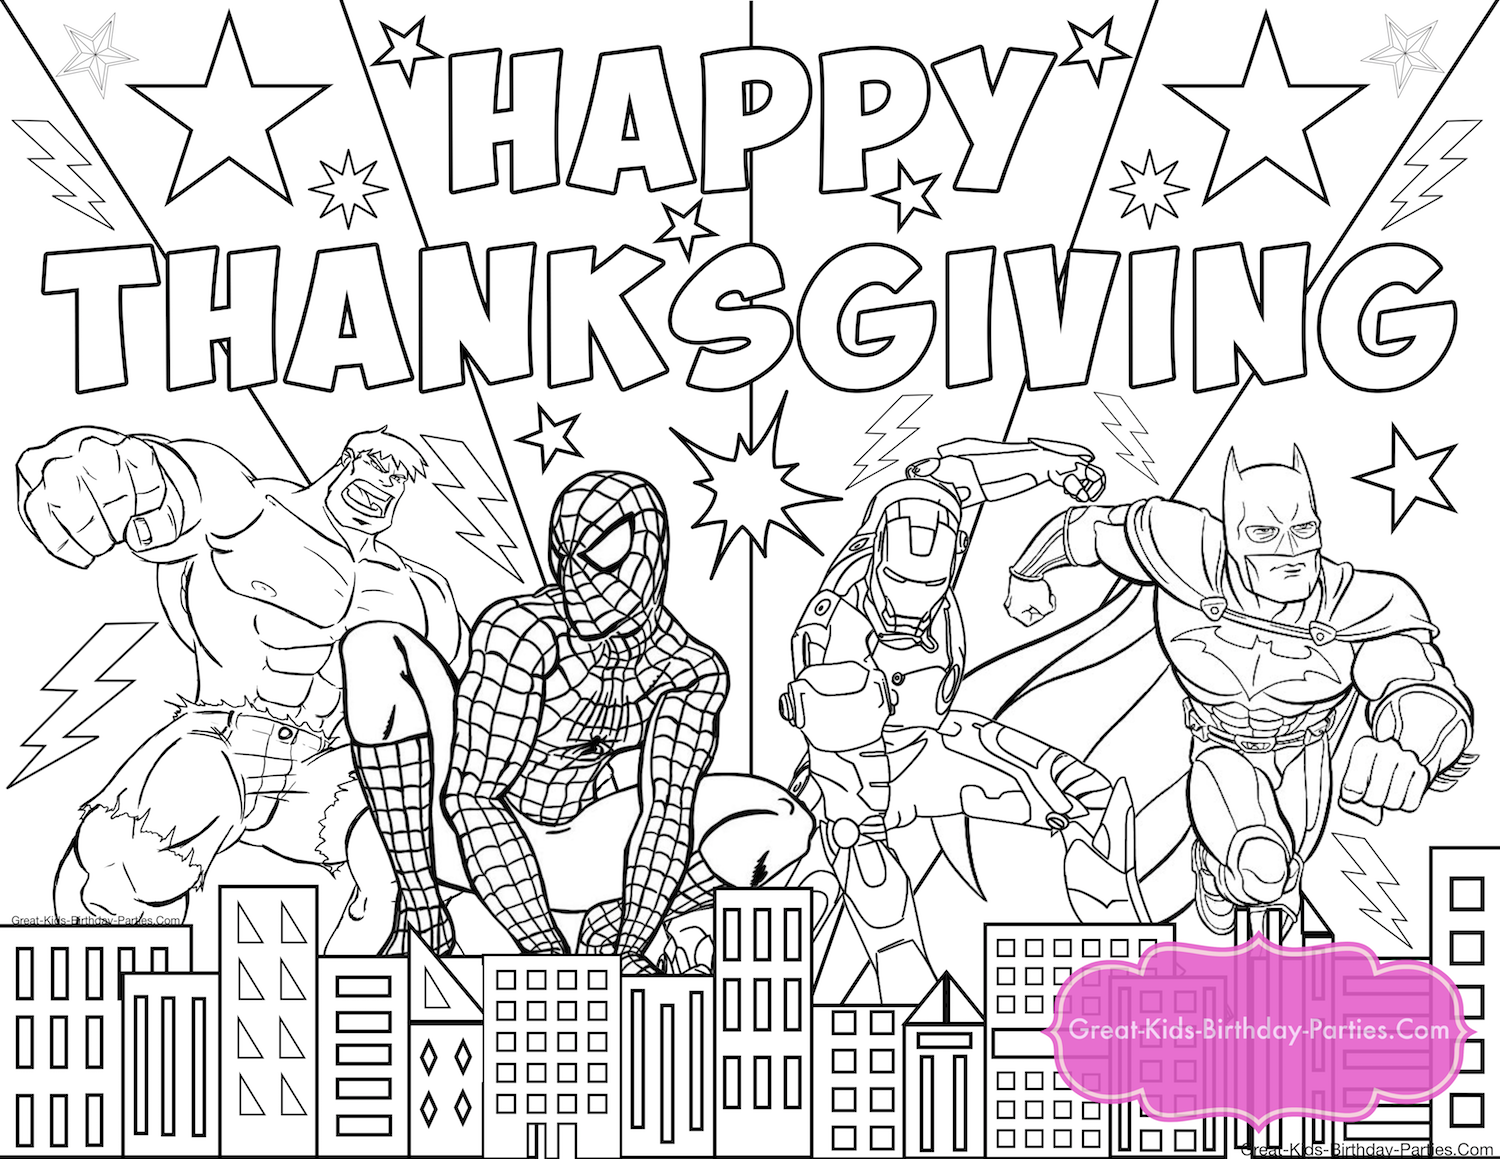 Superhero Thanksgiving coloring pages for kids